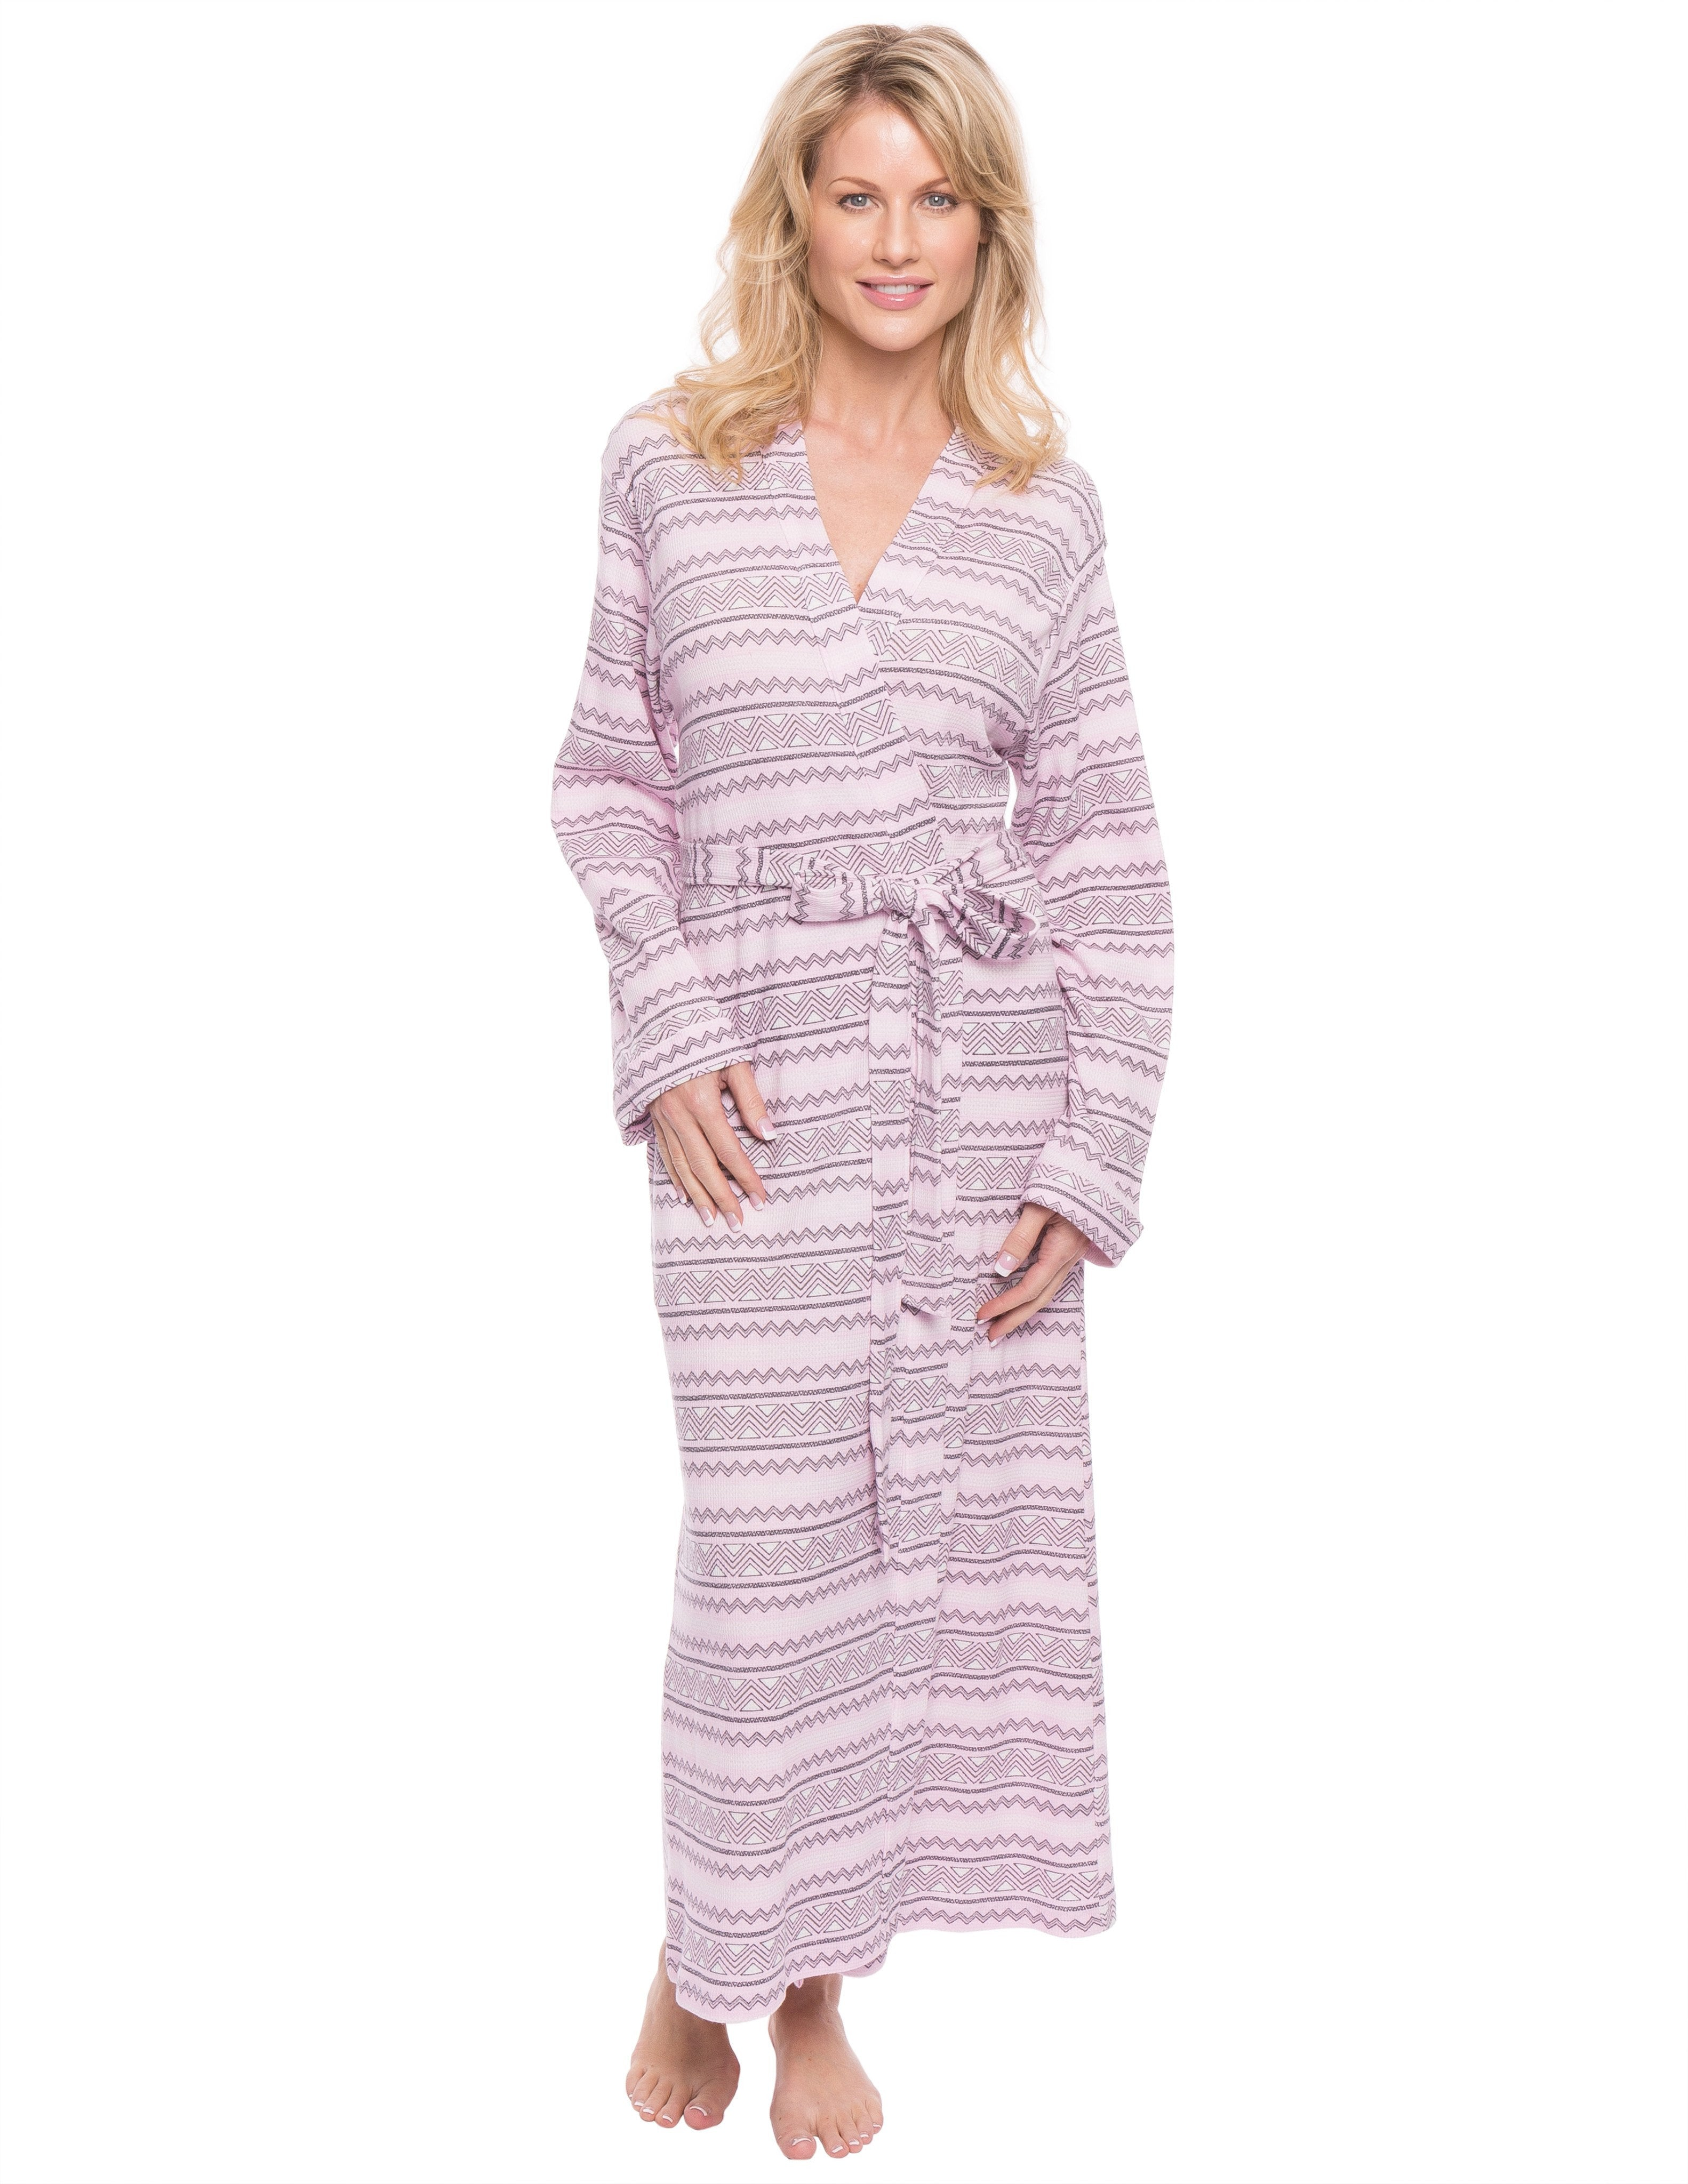 Women's Waffle Knit Thermal Robe